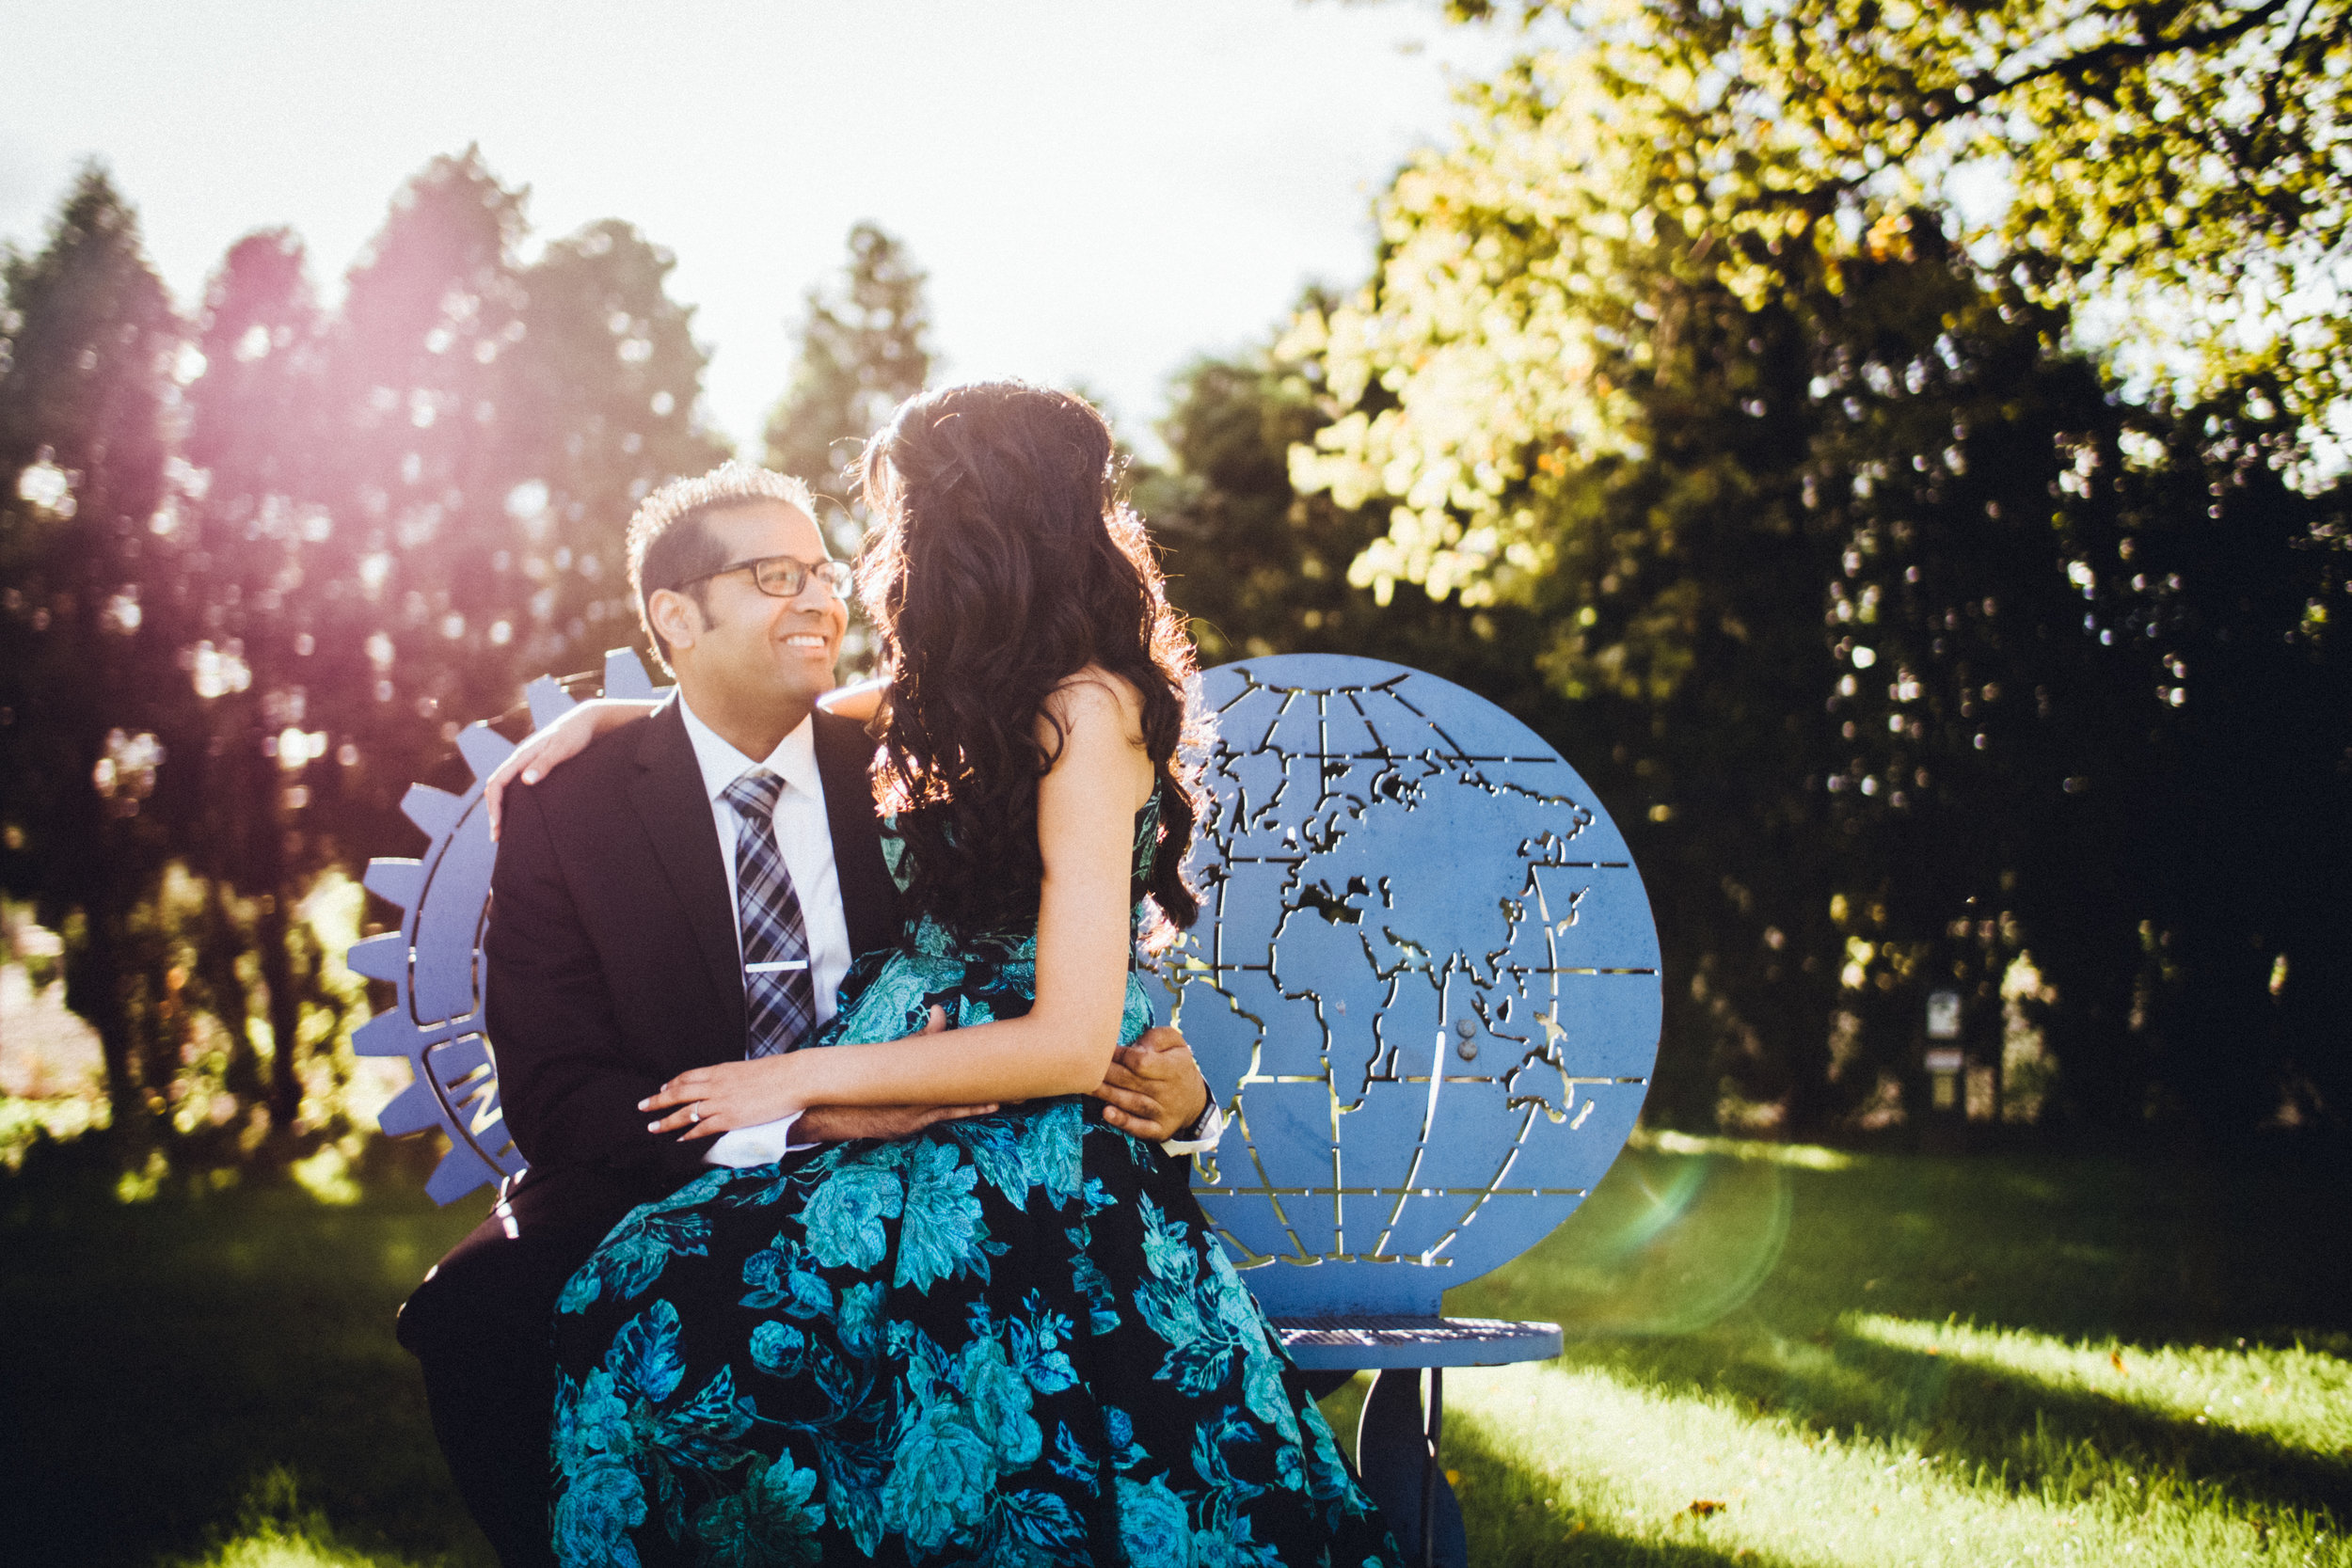 Shadow-Shine-Pictures-Wedding-Photgraphy-Photgrapher-Photograhers-Cinematographer-Cinematographers-Cinematography-West-Michigan-Grand-Rapids-004